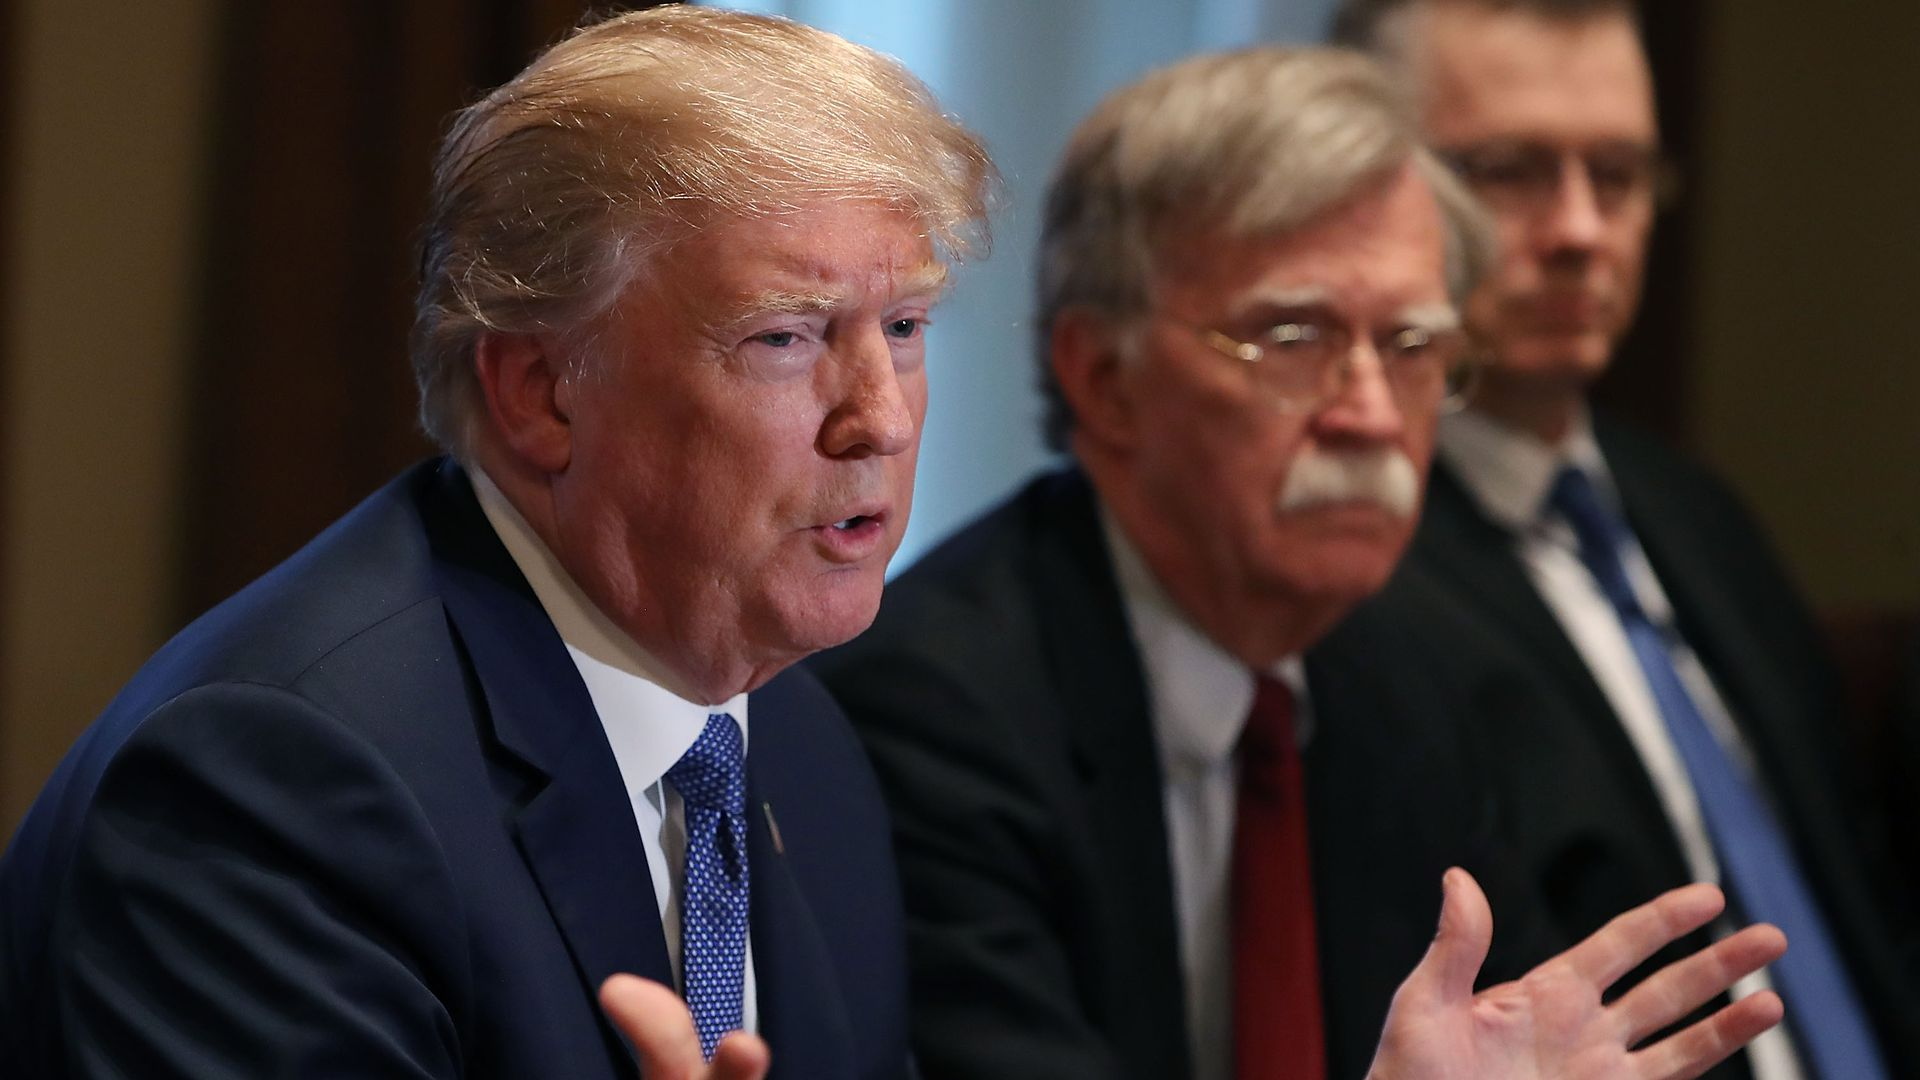 President Donald Trump and his former national security advisor John Bolton